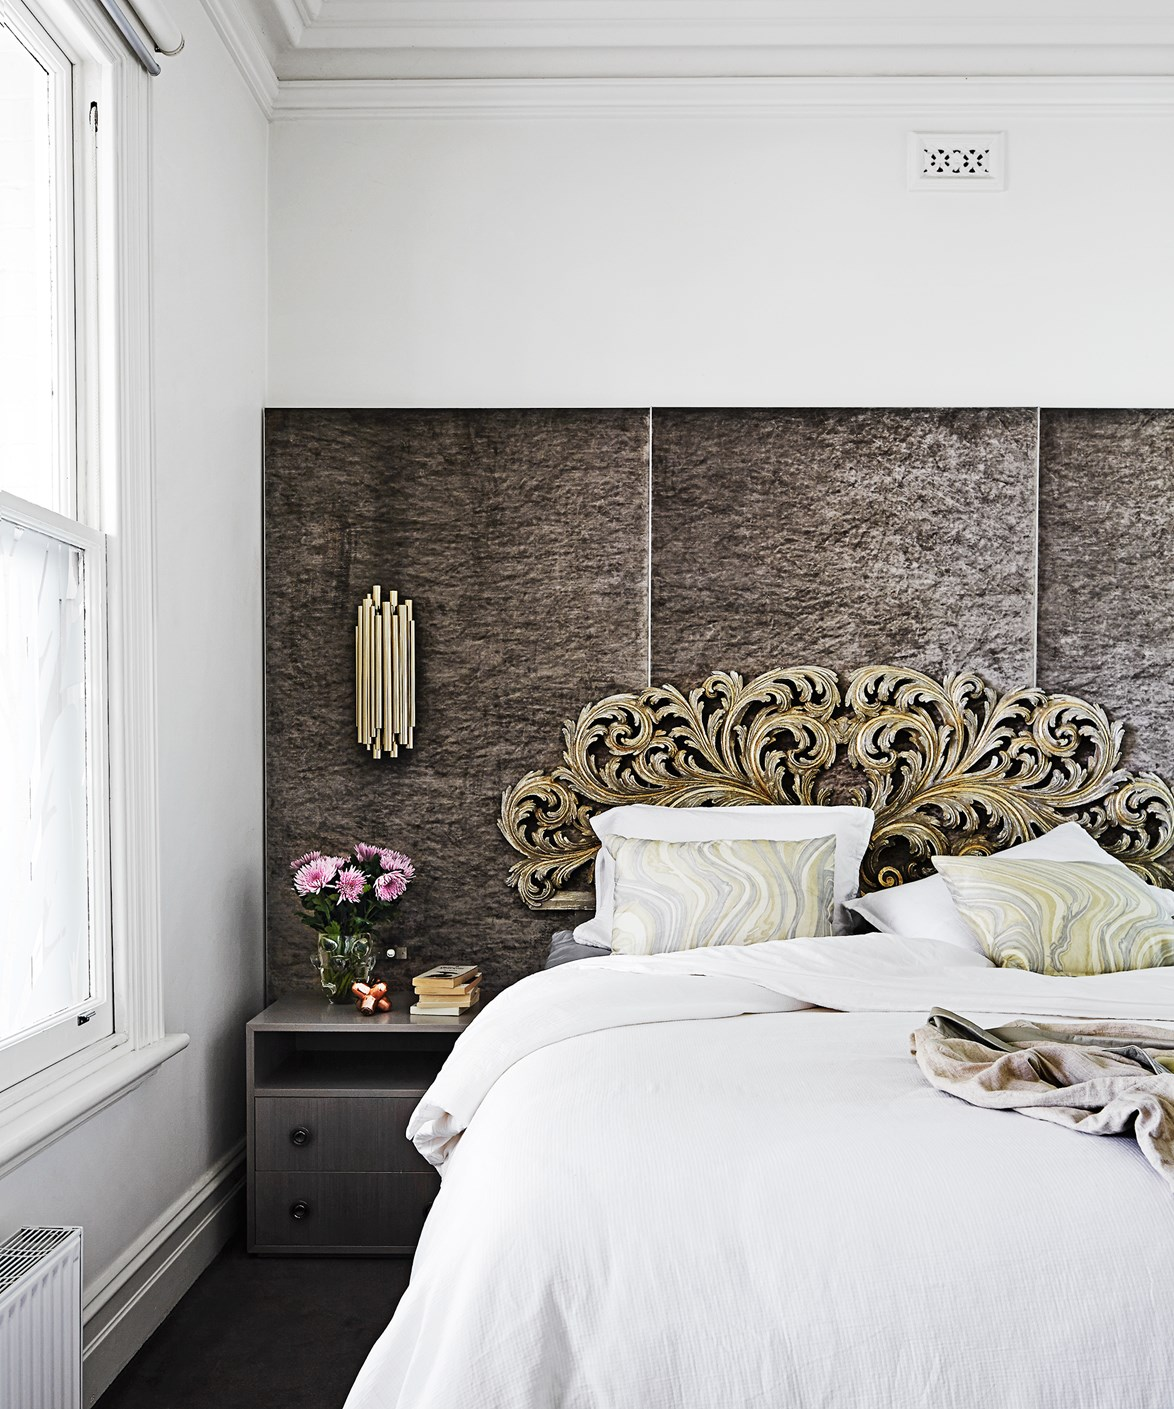 """Inspired by their travels around the world and the high-end hotels they stayed in, the owners of this [luxe hotel-inspired home](https://www.homestolove.com.au/gallery-vivienne-and-maxs-luxe-hotel-inspired-home-1671